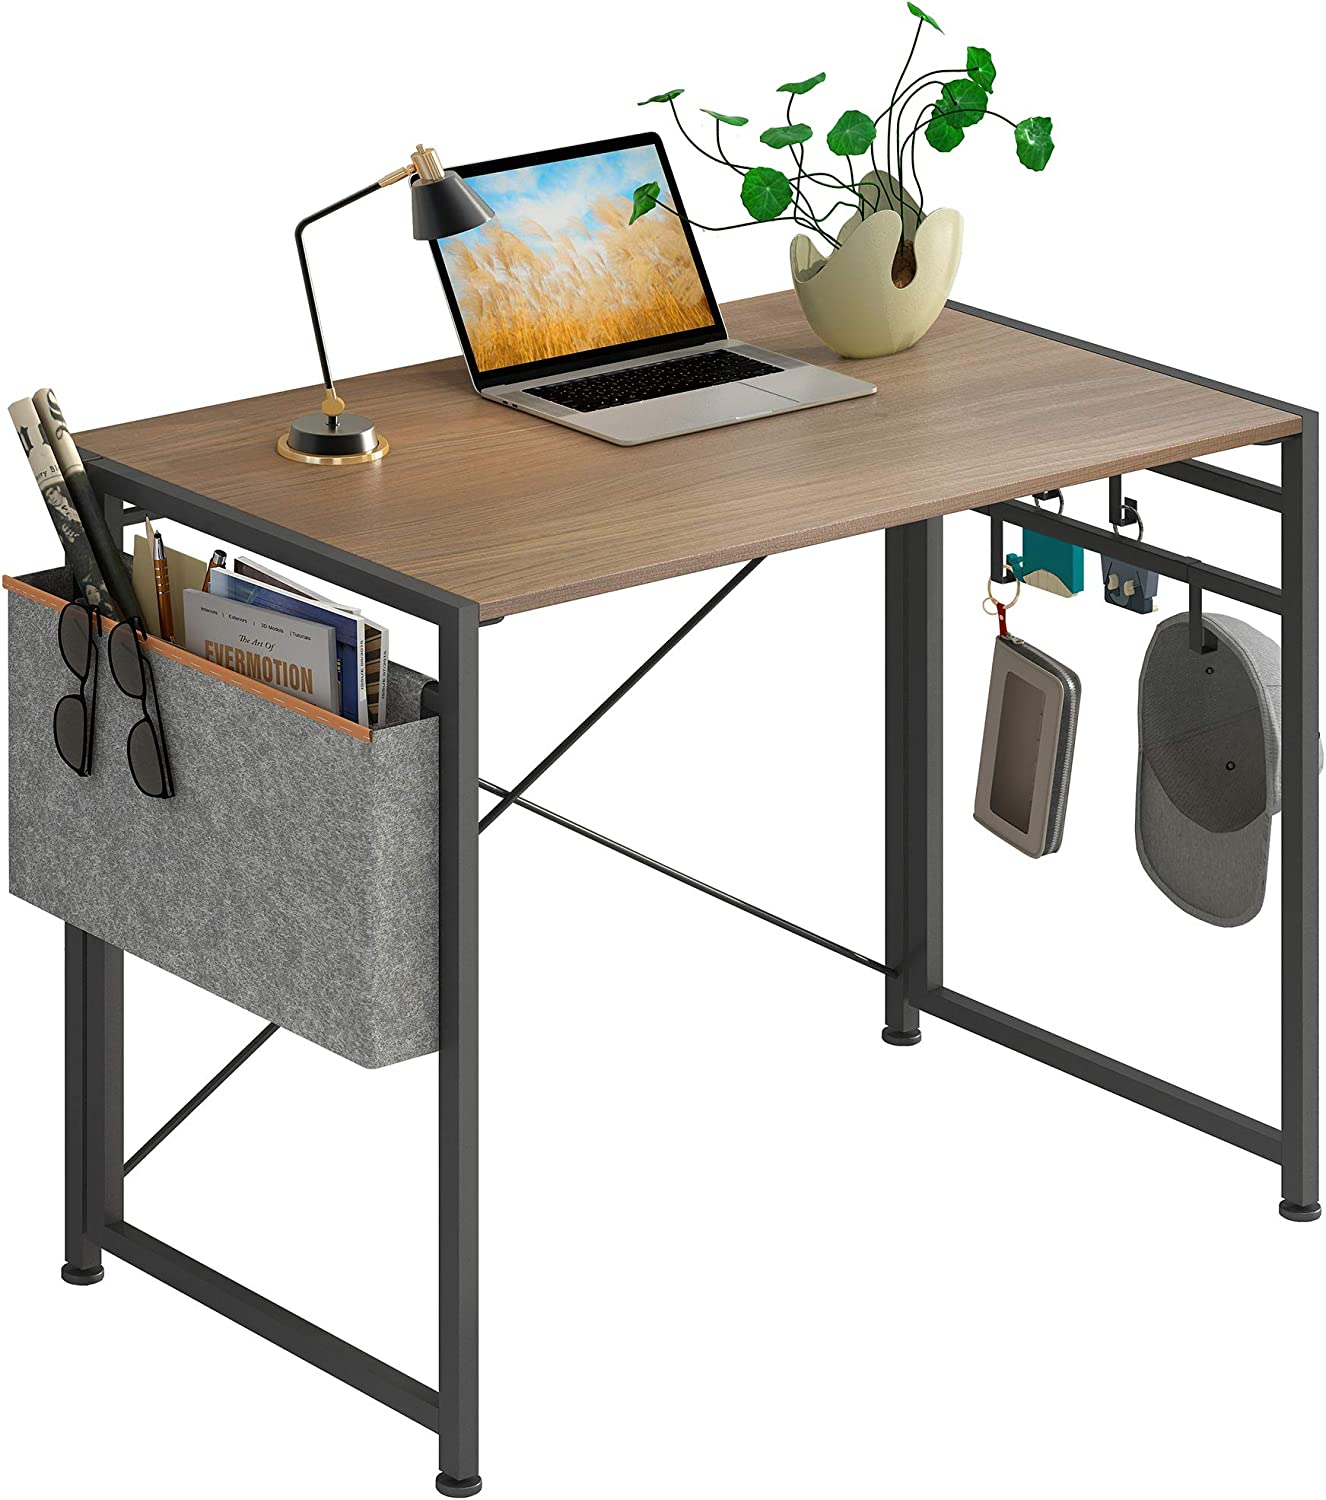 "JSB Folding Computer Desk with Cloth Bag Hook, No-Assembly PC Desk Modern Small Work Table Laptop Writing Desk for Home Office (35.43"" x 17.7"" x 29.53"", Brown & Cloth Bag)"